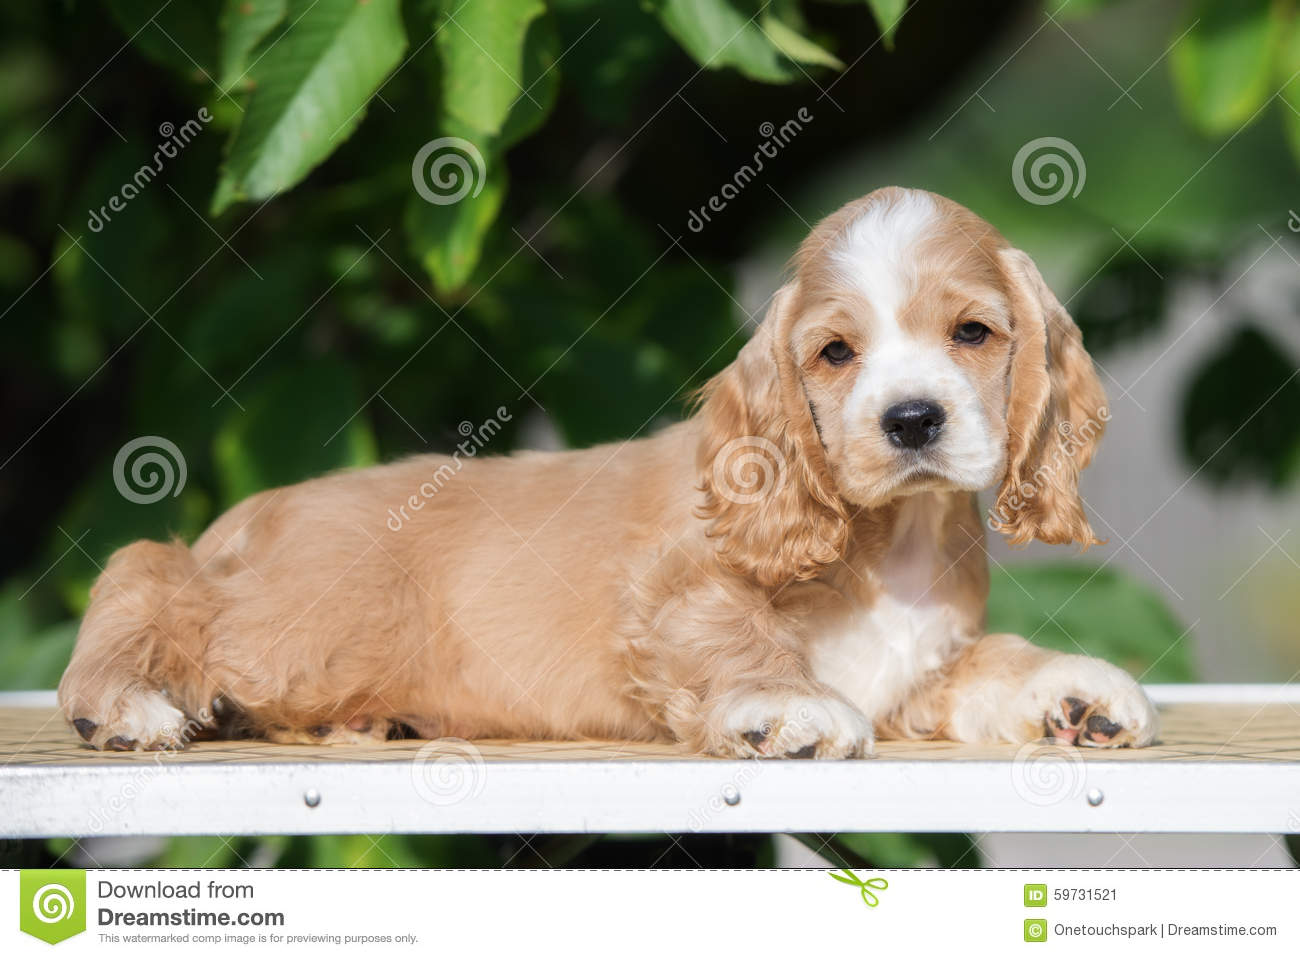 Red And White American Cocker Spaniel Puppy Stock Image Image Of Mammal Breed 59731521